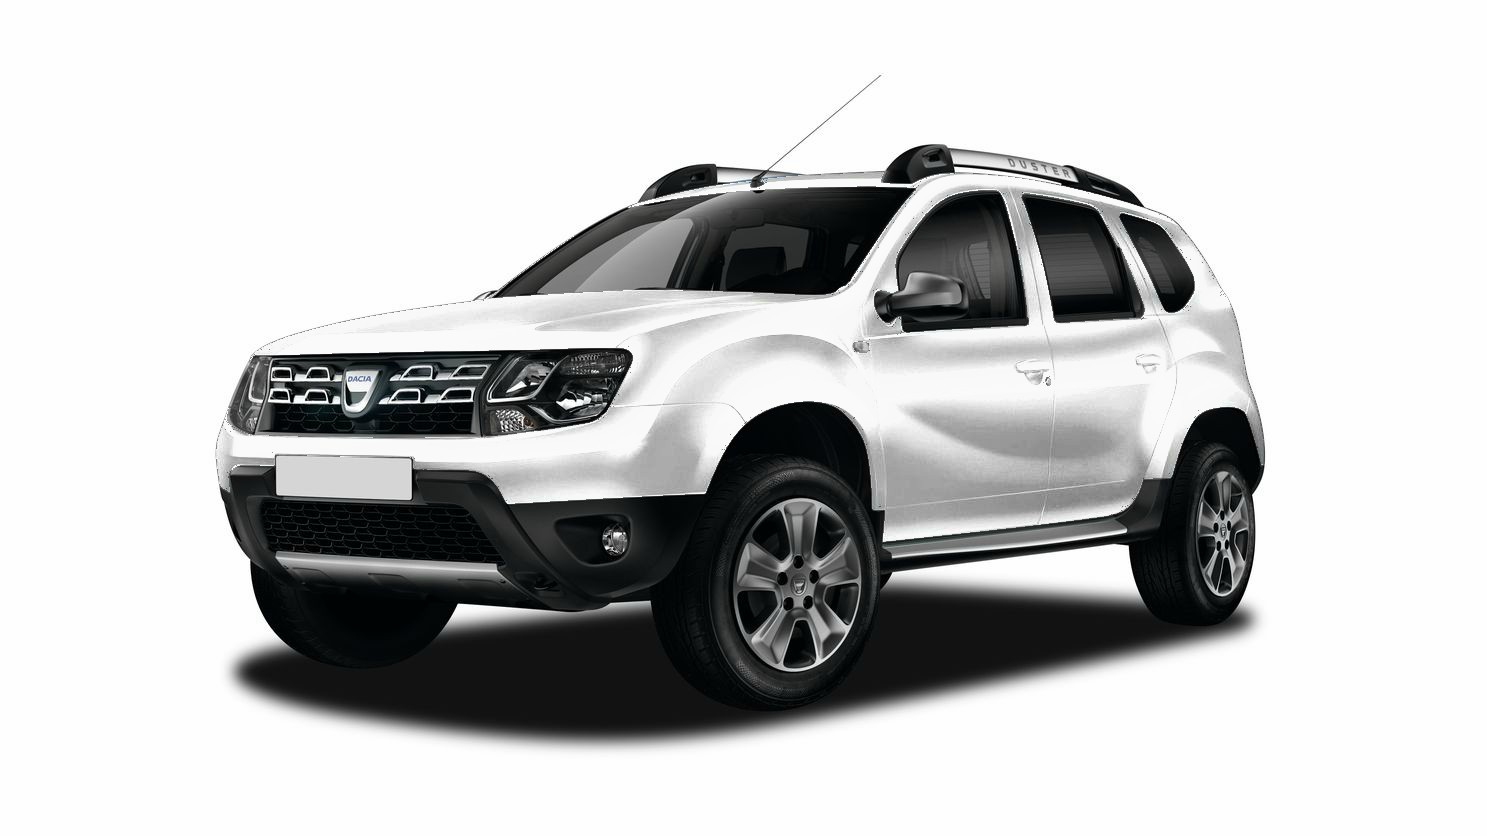 dacia duster 4x4 et suv 5 portes diesel 1 5 dci 110 4x4 bo te manuelle finition. Black Bedroom Furniture Sets. Home Design Ideas